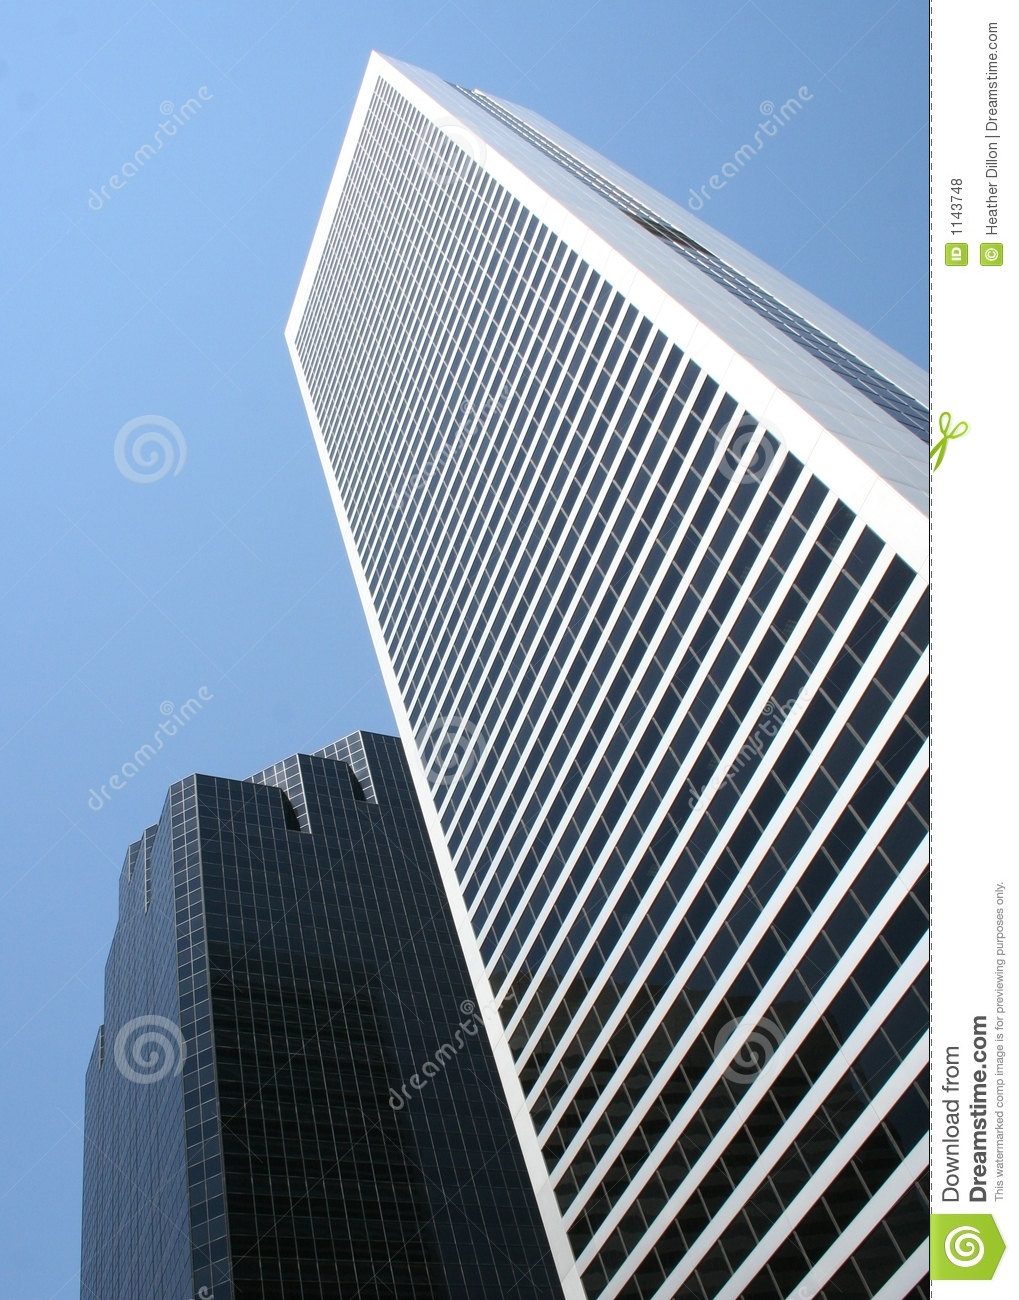 Tall City Building Royalty Free Stock Photos Image 1143748